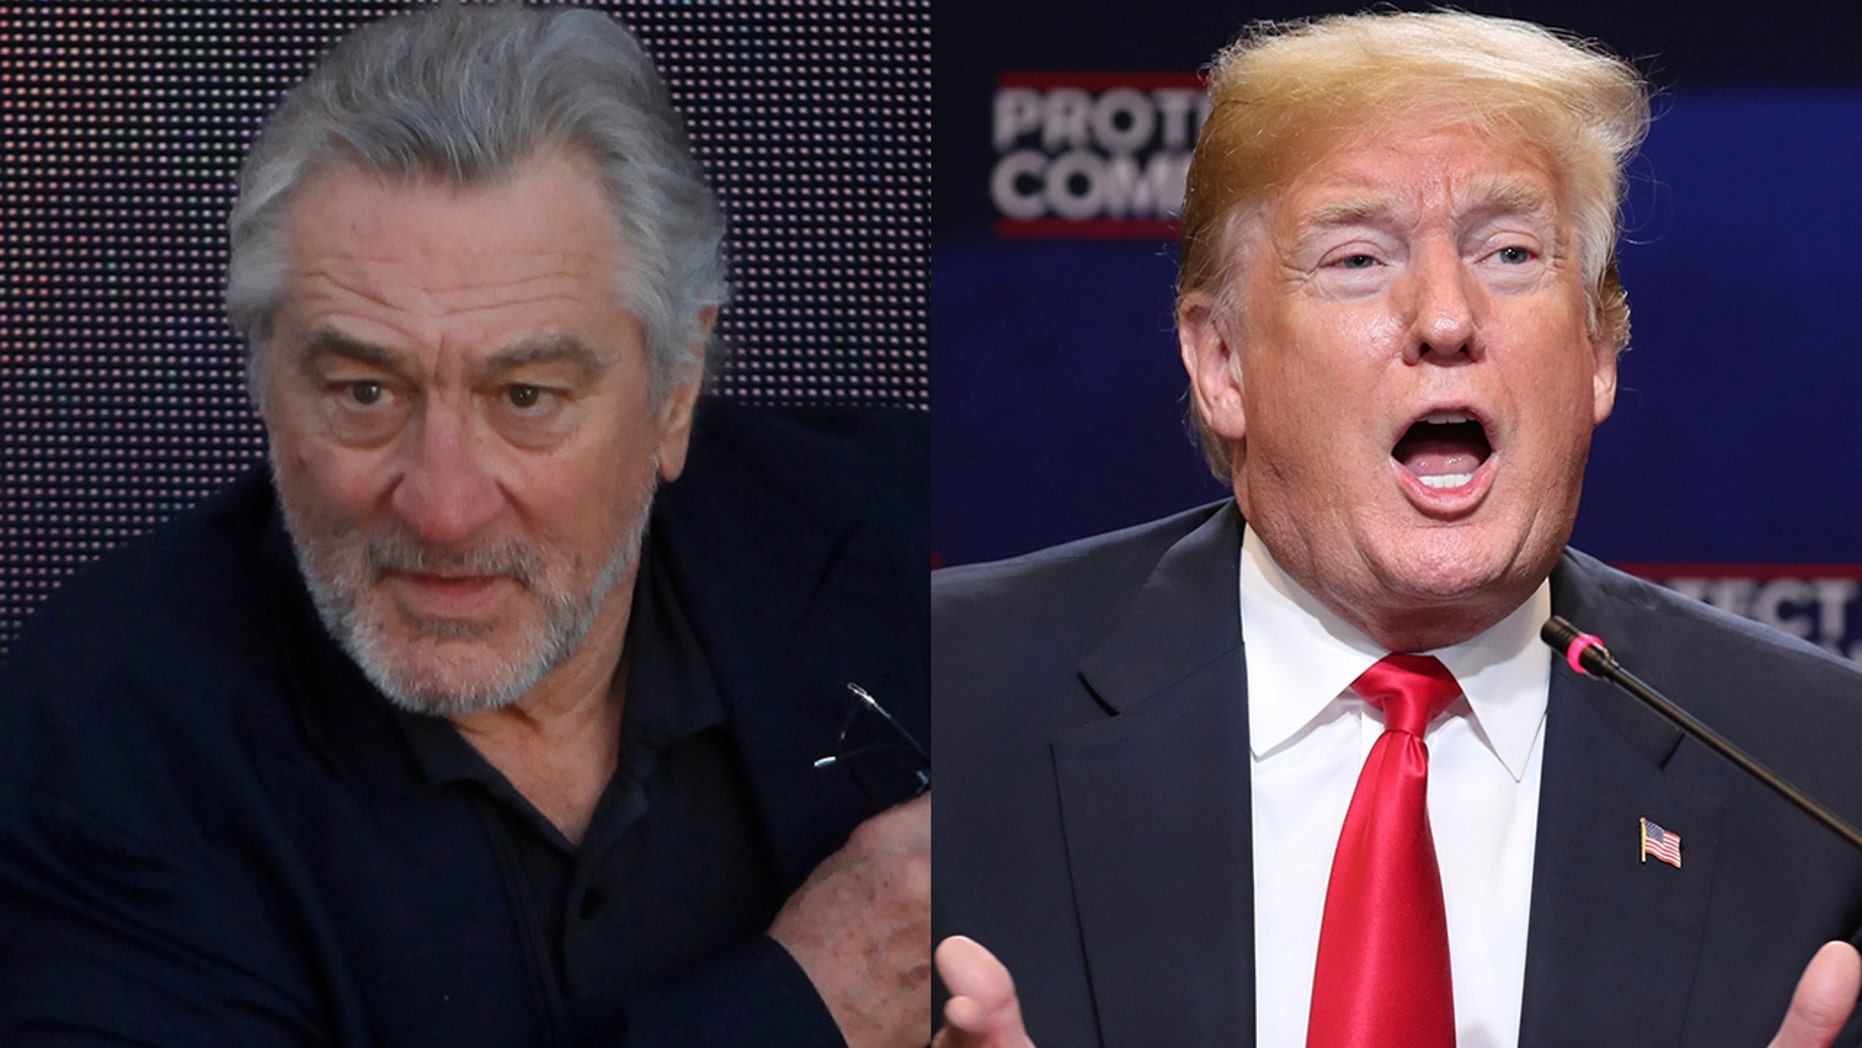 Robert De Niro decided to become Russian